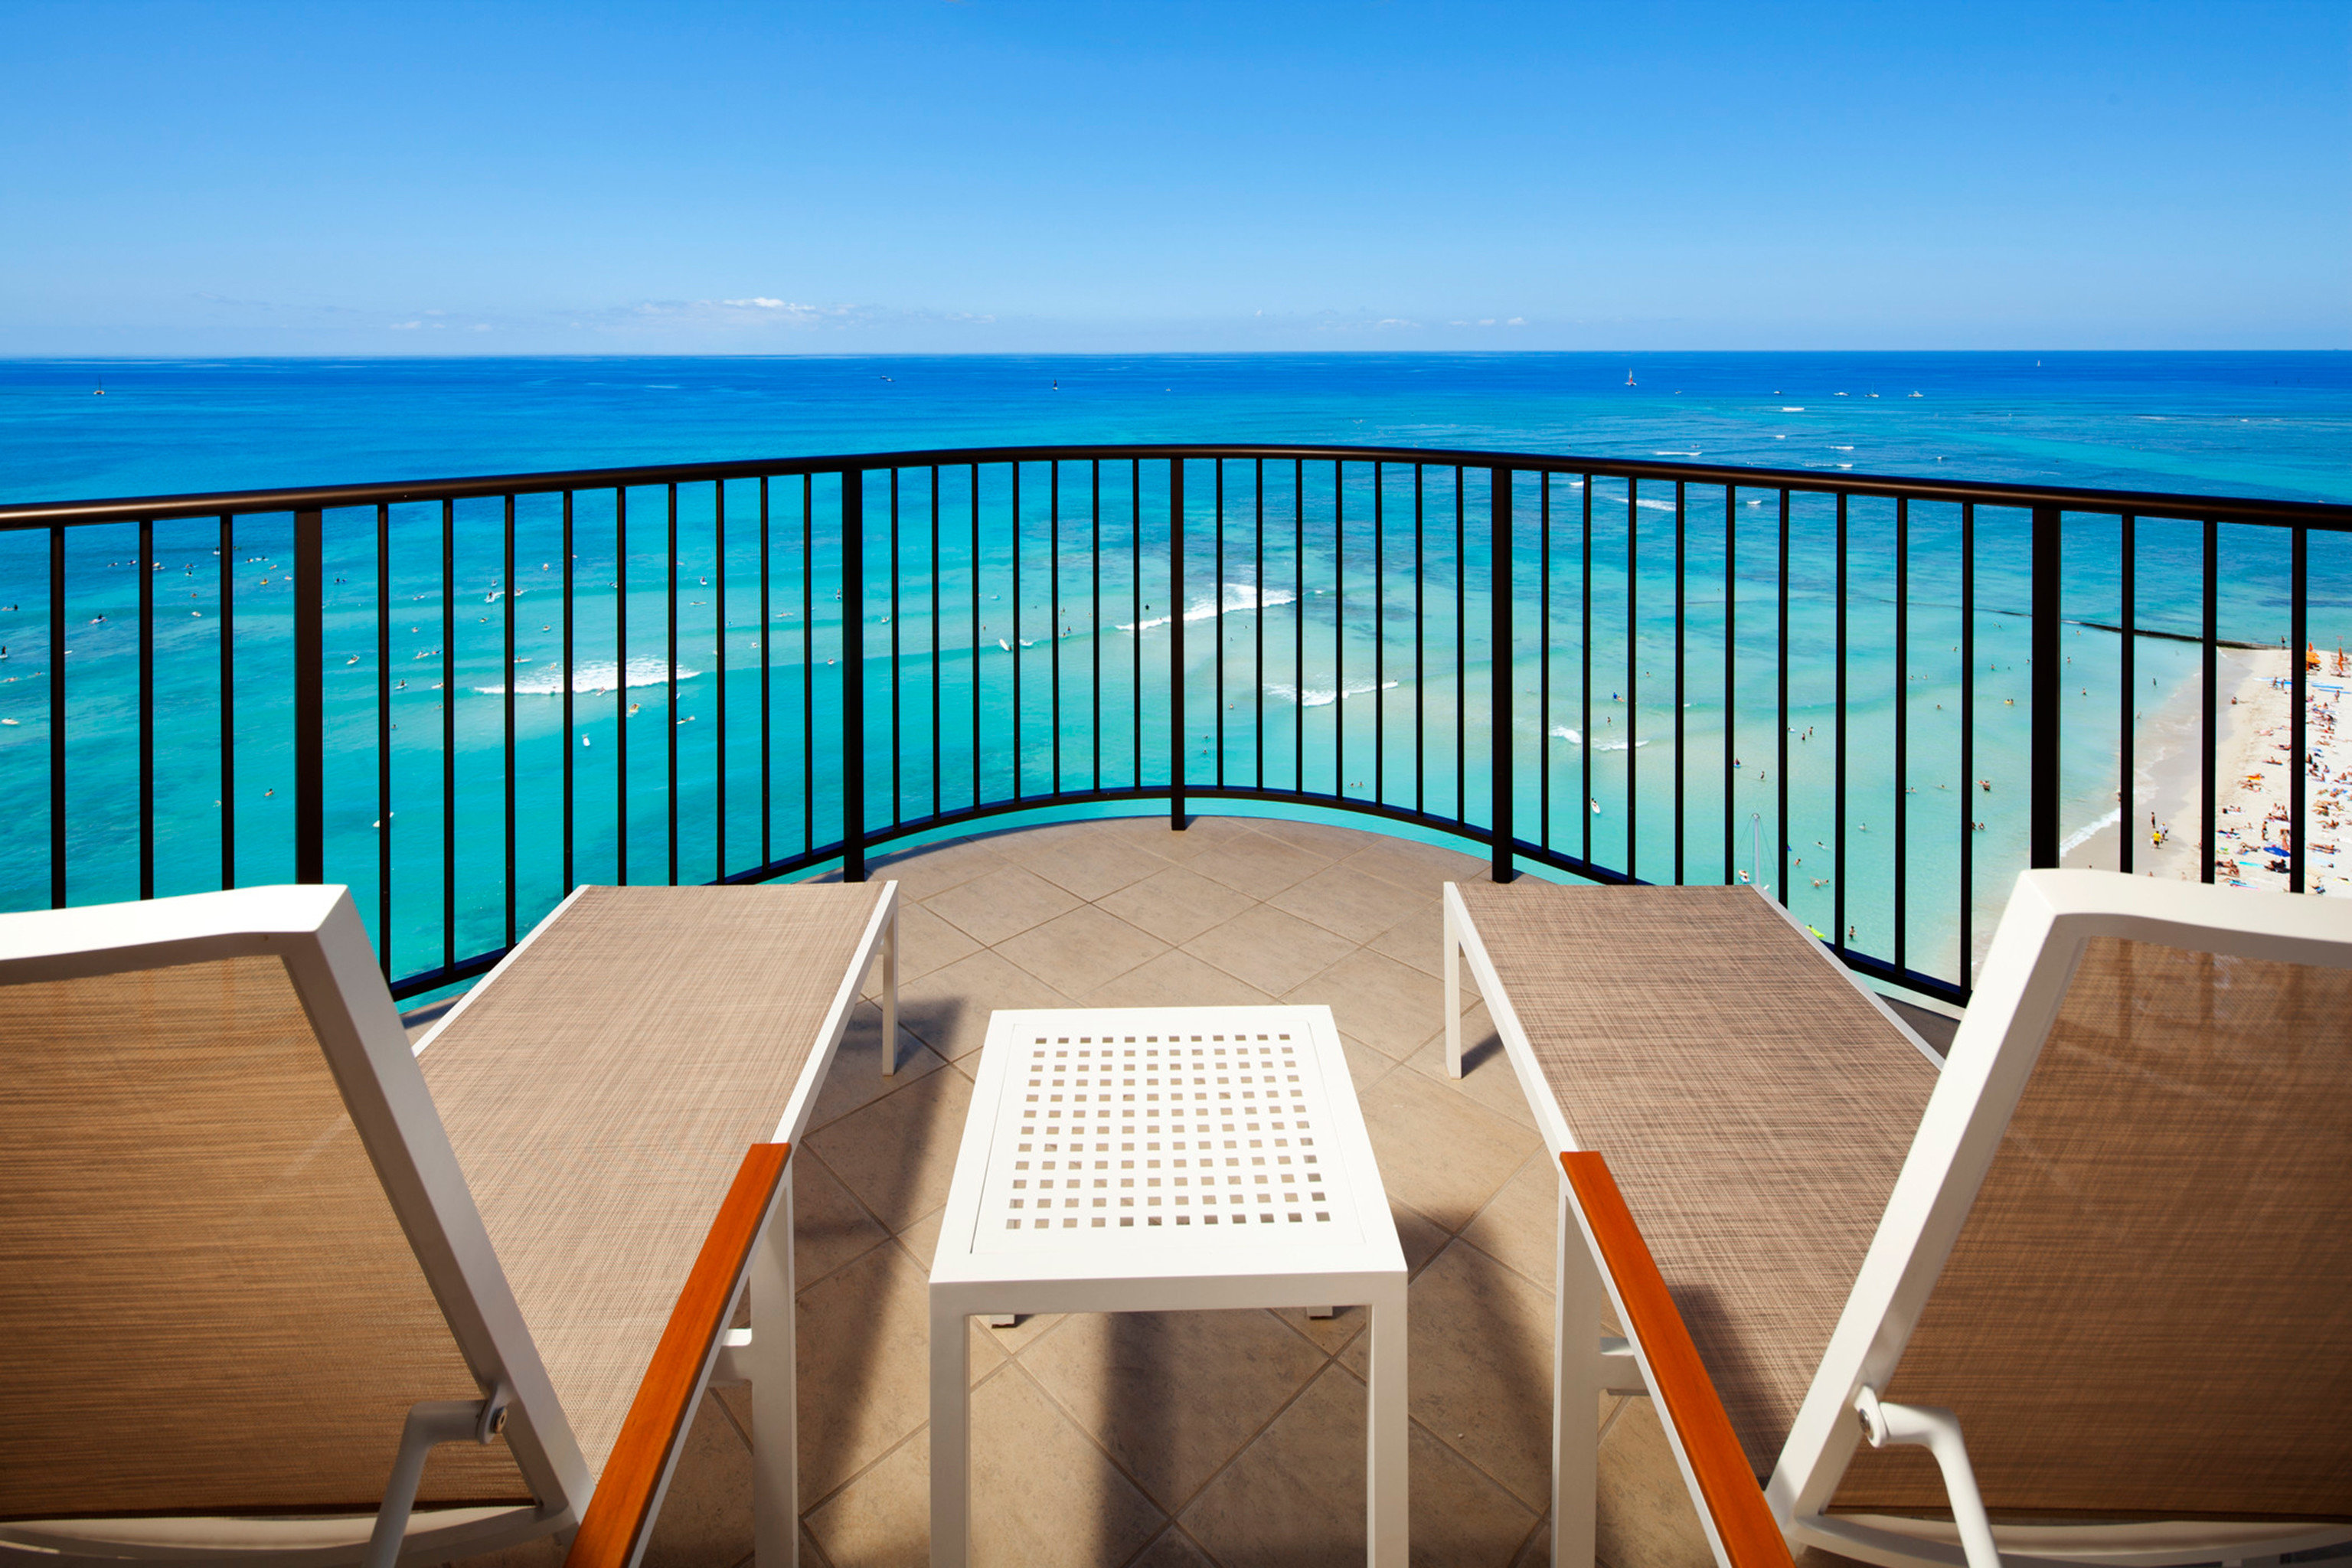 Balcony Beach Ocean Resort Scenic views sky chair leisure property wooden home Deck empty